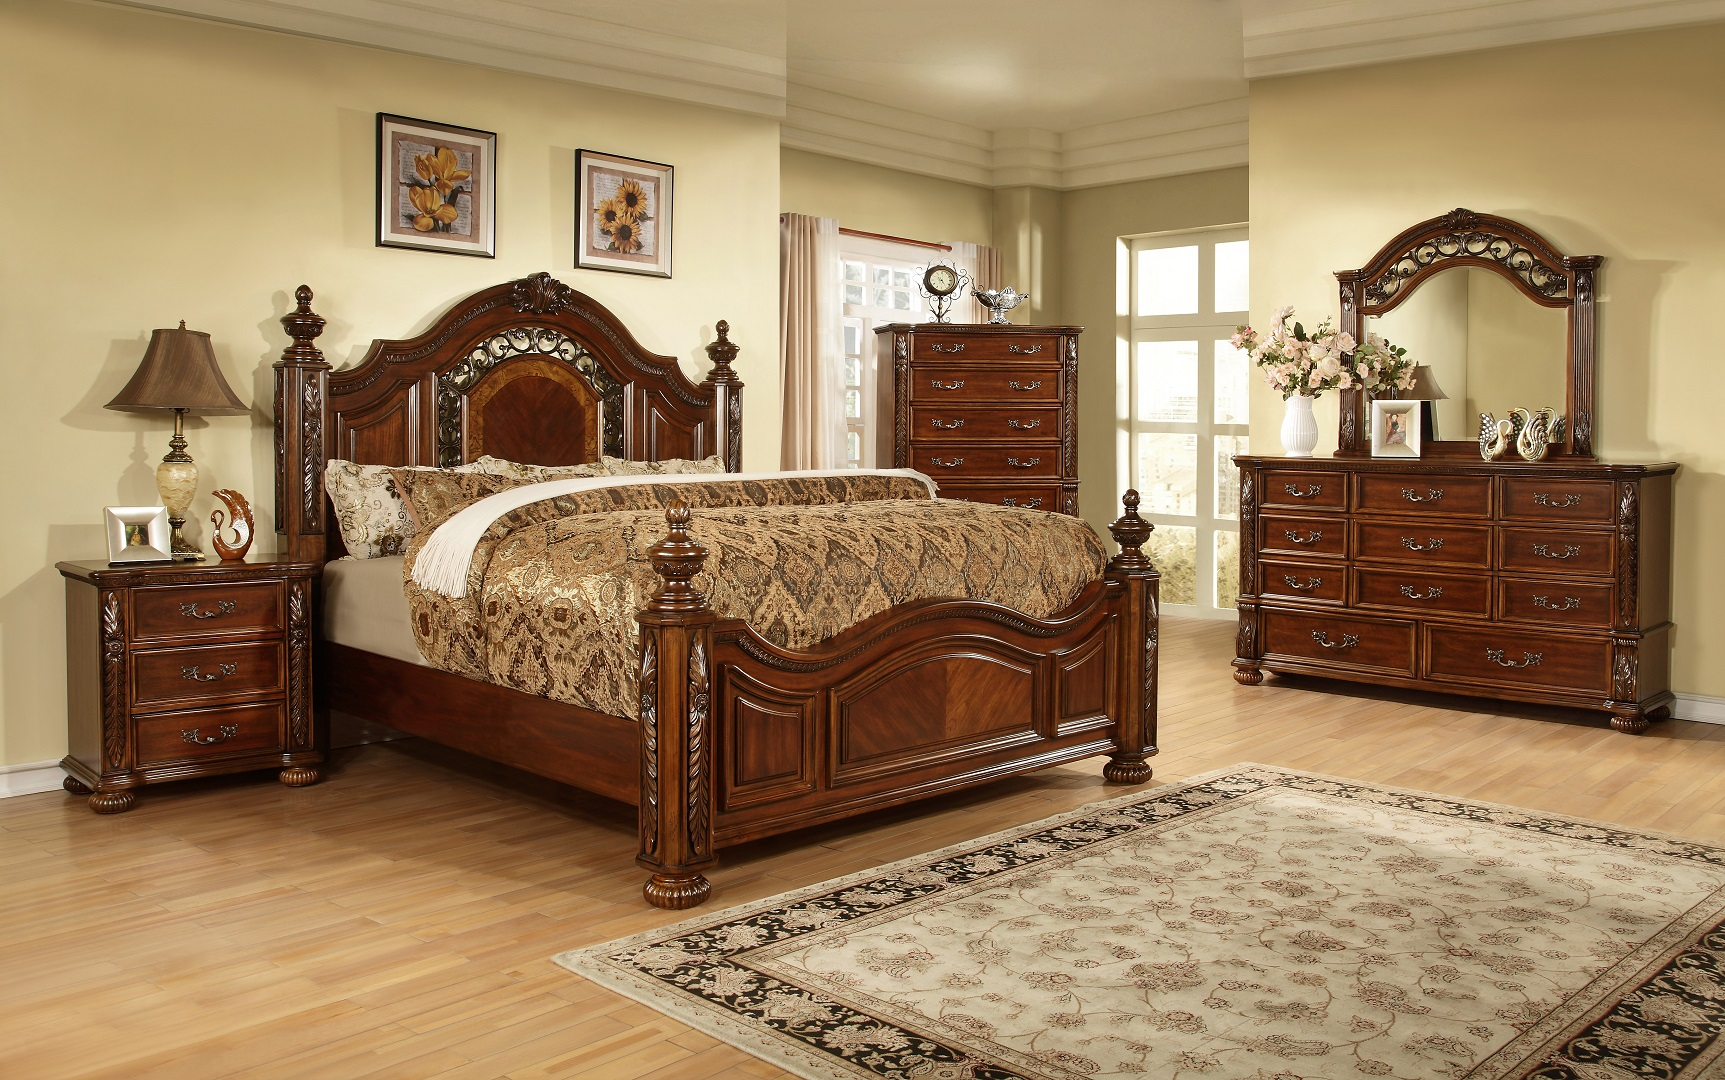 GL2902 Alamfi Bedroom Set